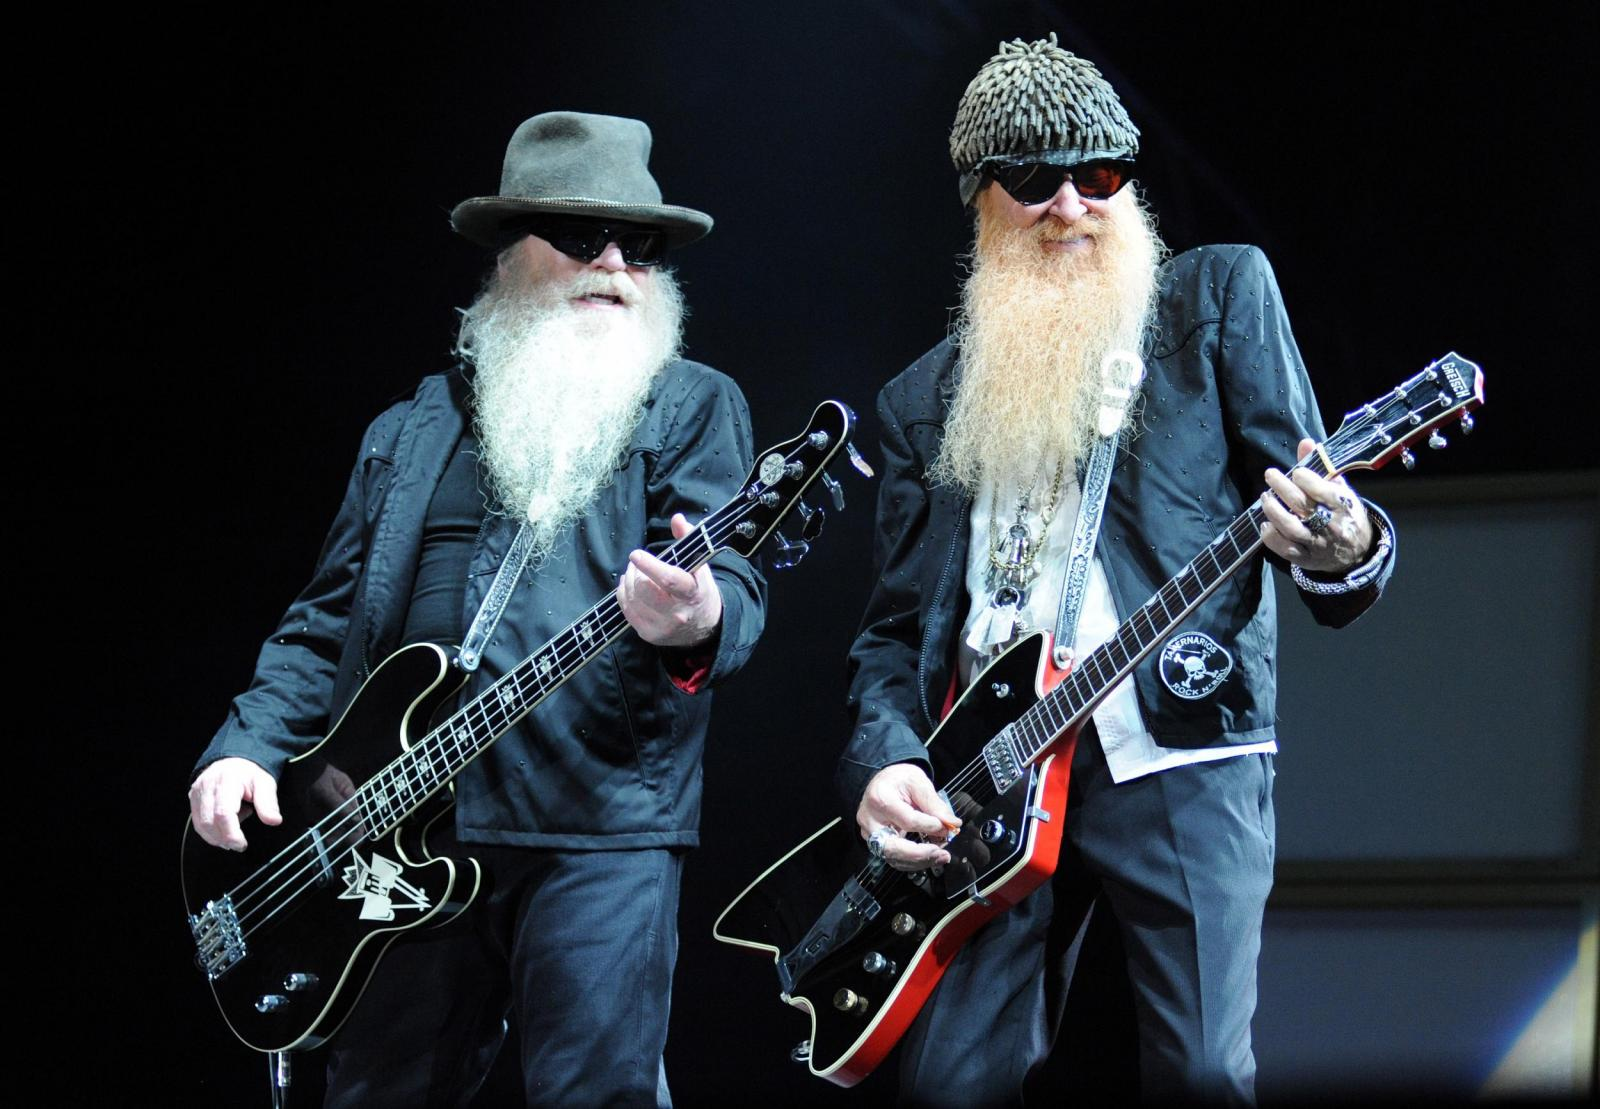 zz top скачатьzz top скачать, zz top sharp dressed man, zz top la grange, zz top слушать, zz top i gotsta get paid, zz top bad to the bone, zz top rough boy, zz top legs, zz top фото, zz top tush, zz top eliminator, zz top pincushion, zz top википедия, zz top без бороды, zz top альбомы, zz top la futura, zz top лучшее, zz top velcro fly, zz top mescalero, zz top afterburner